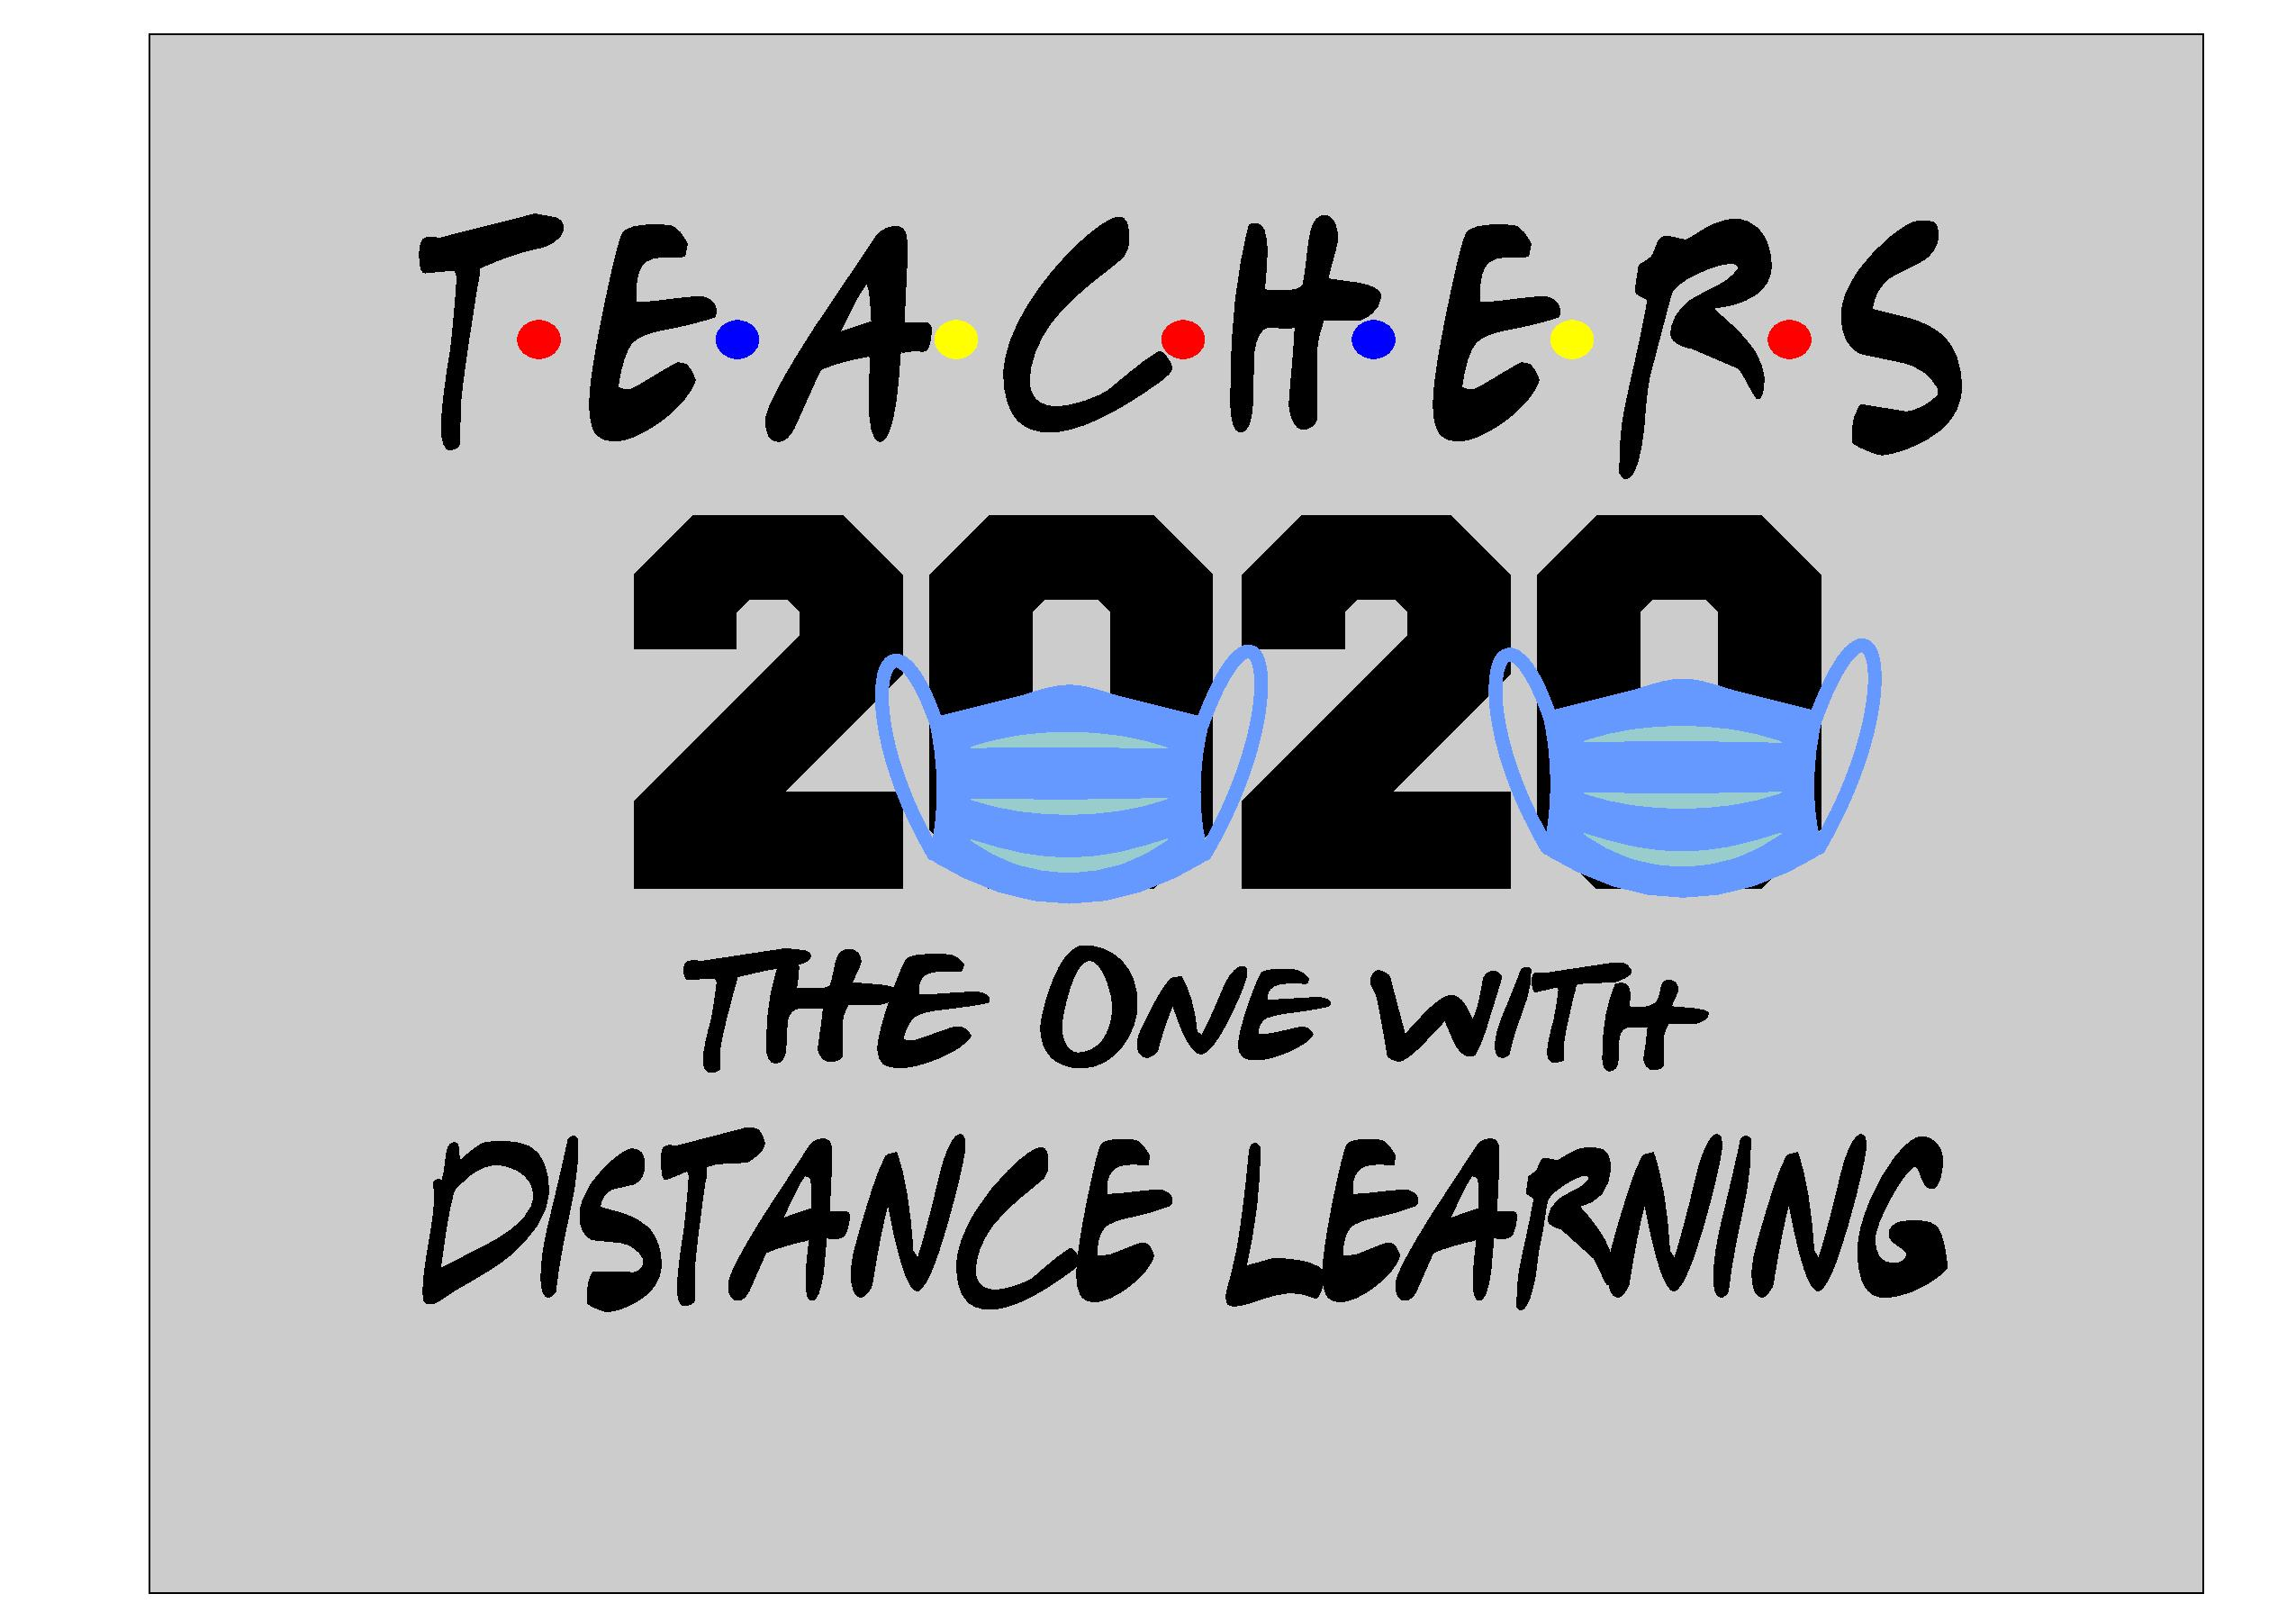 TEACHERS DISTANCE LEARNING